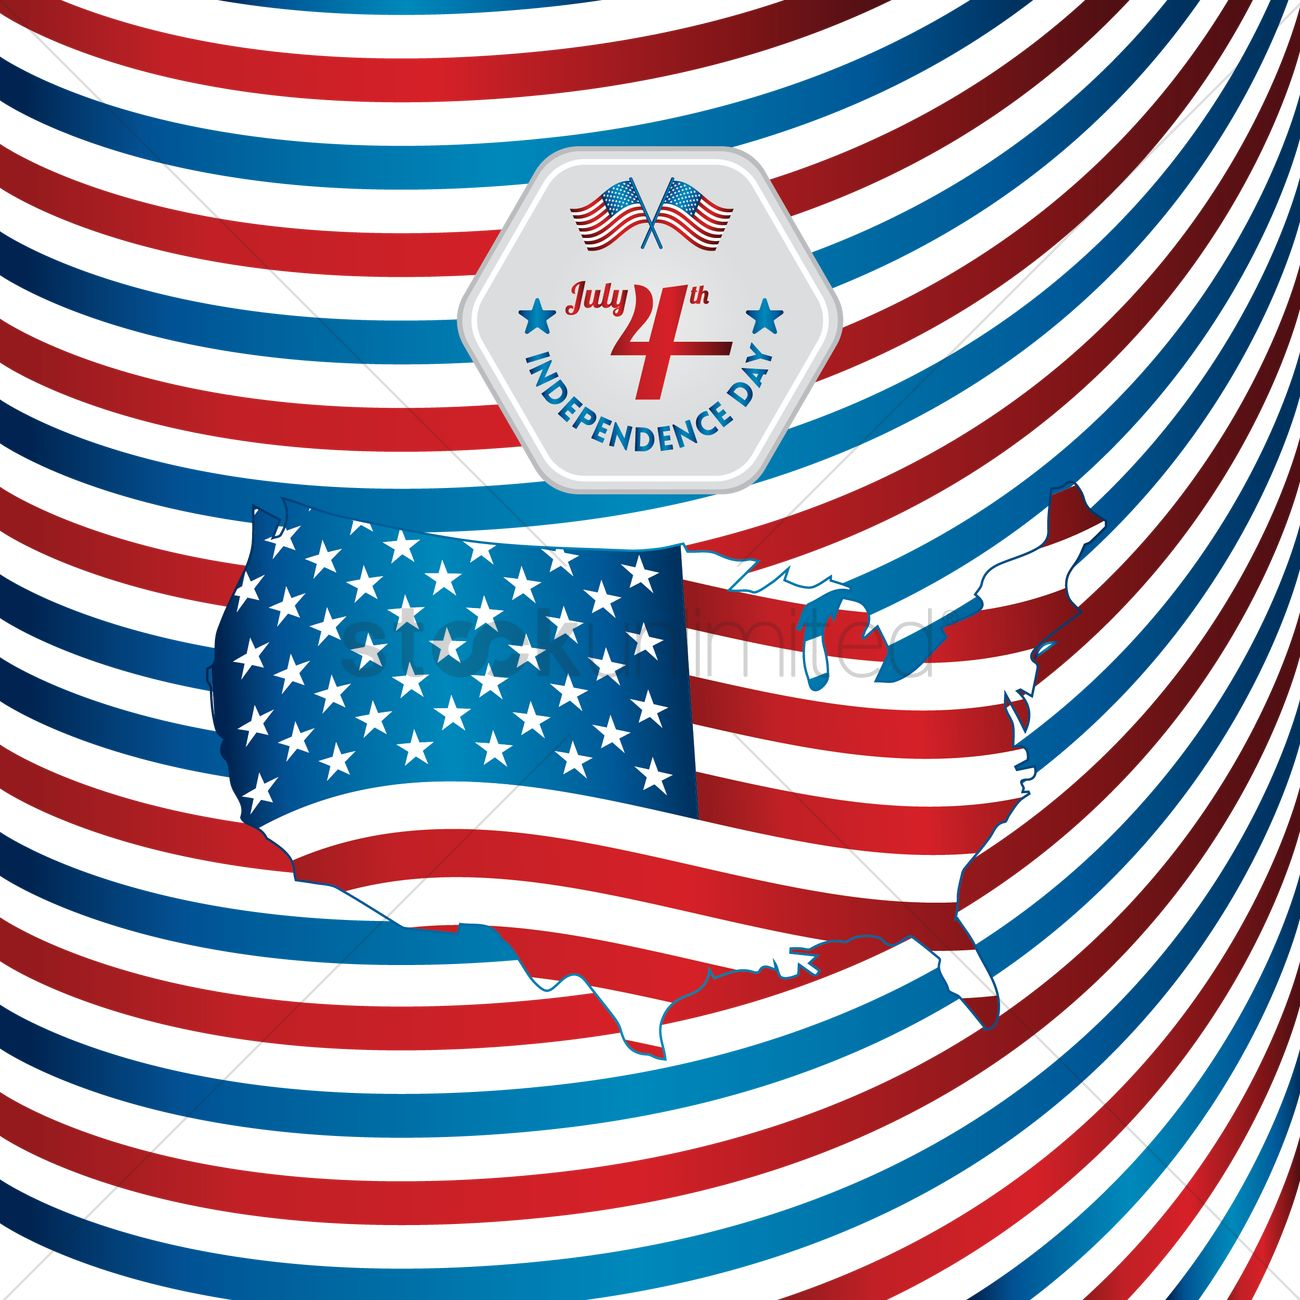 American independence day poster Vector Image - 1530433 | StockUnlimited